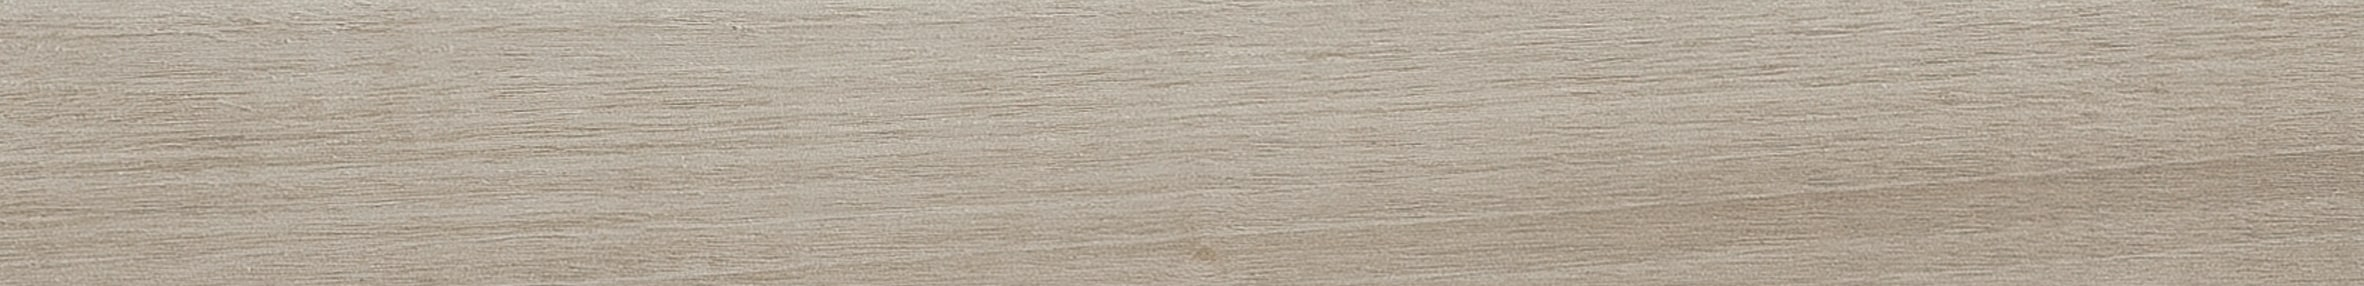 Wooden Tile / Wooden Gray Matte 10mm 15 x 120